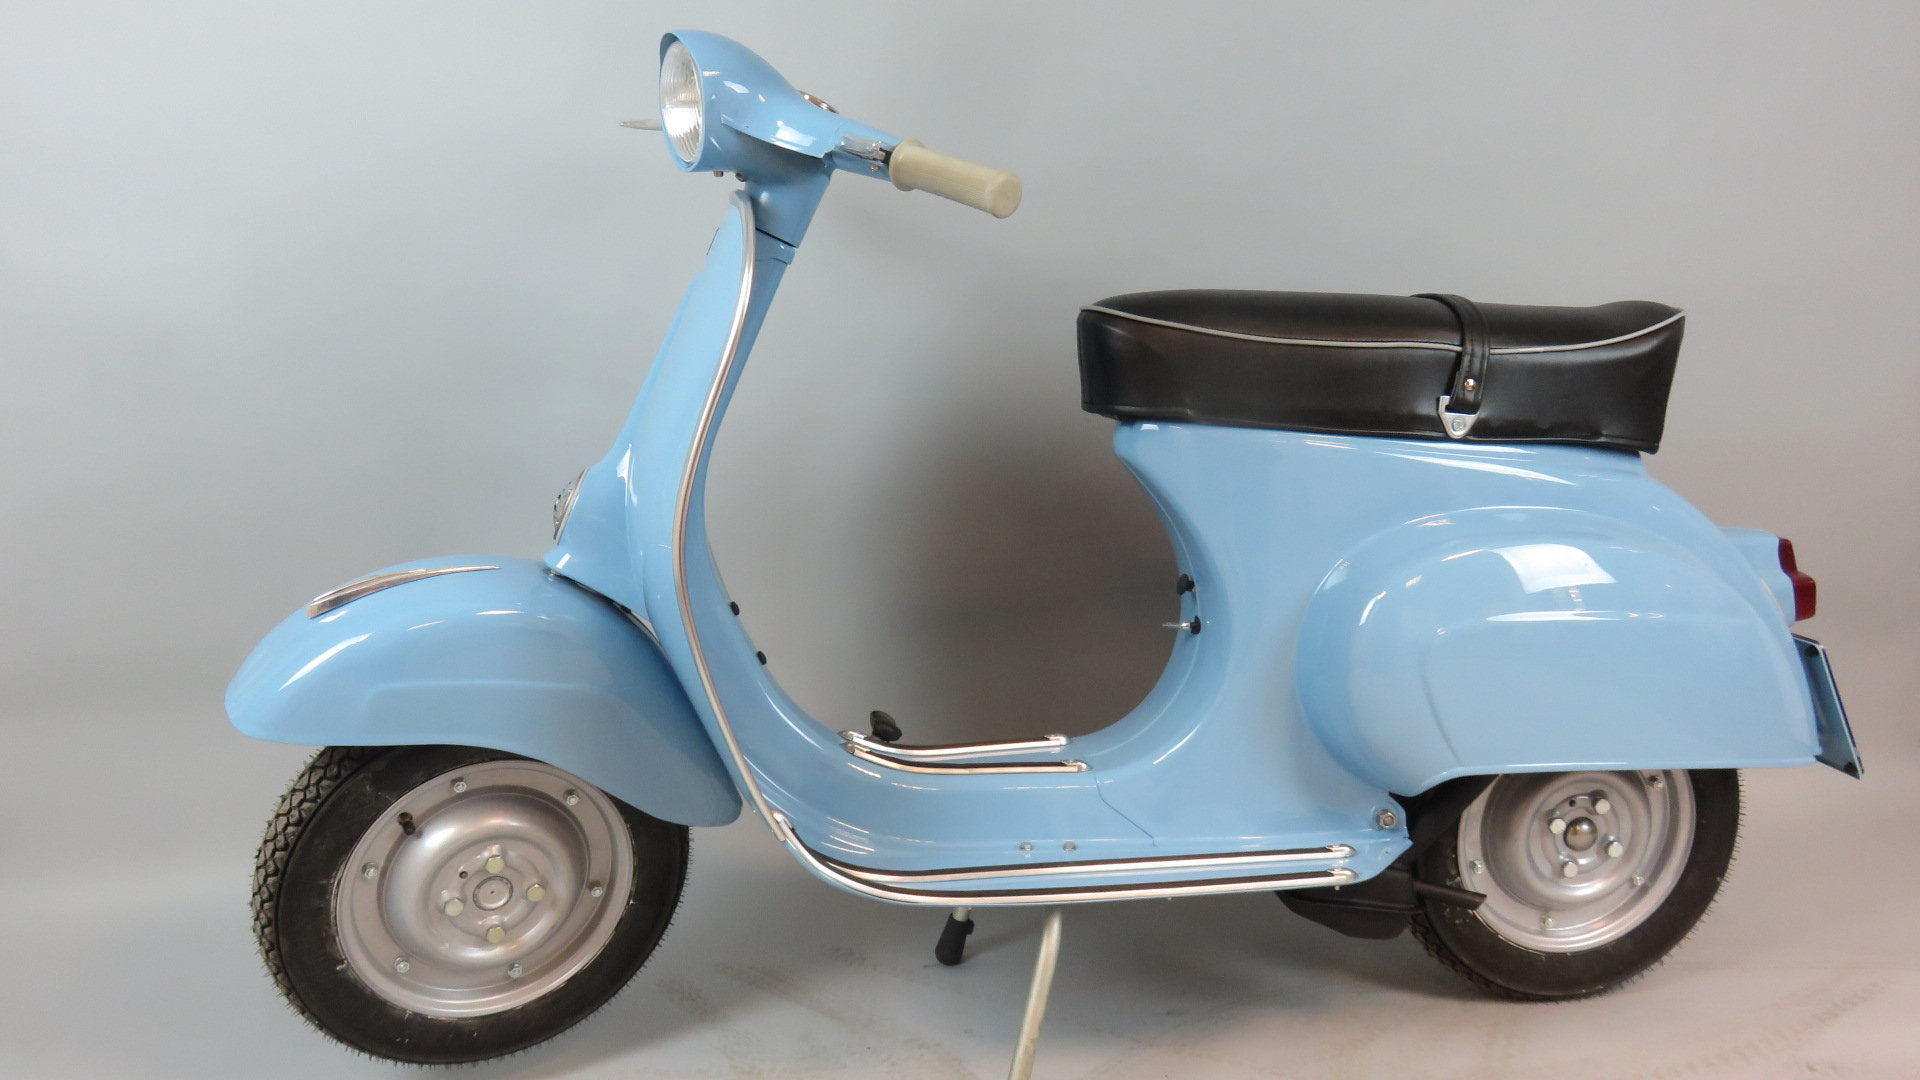 1964 Vespa 90 mk1 small door For Sale (picture 5 of 6)